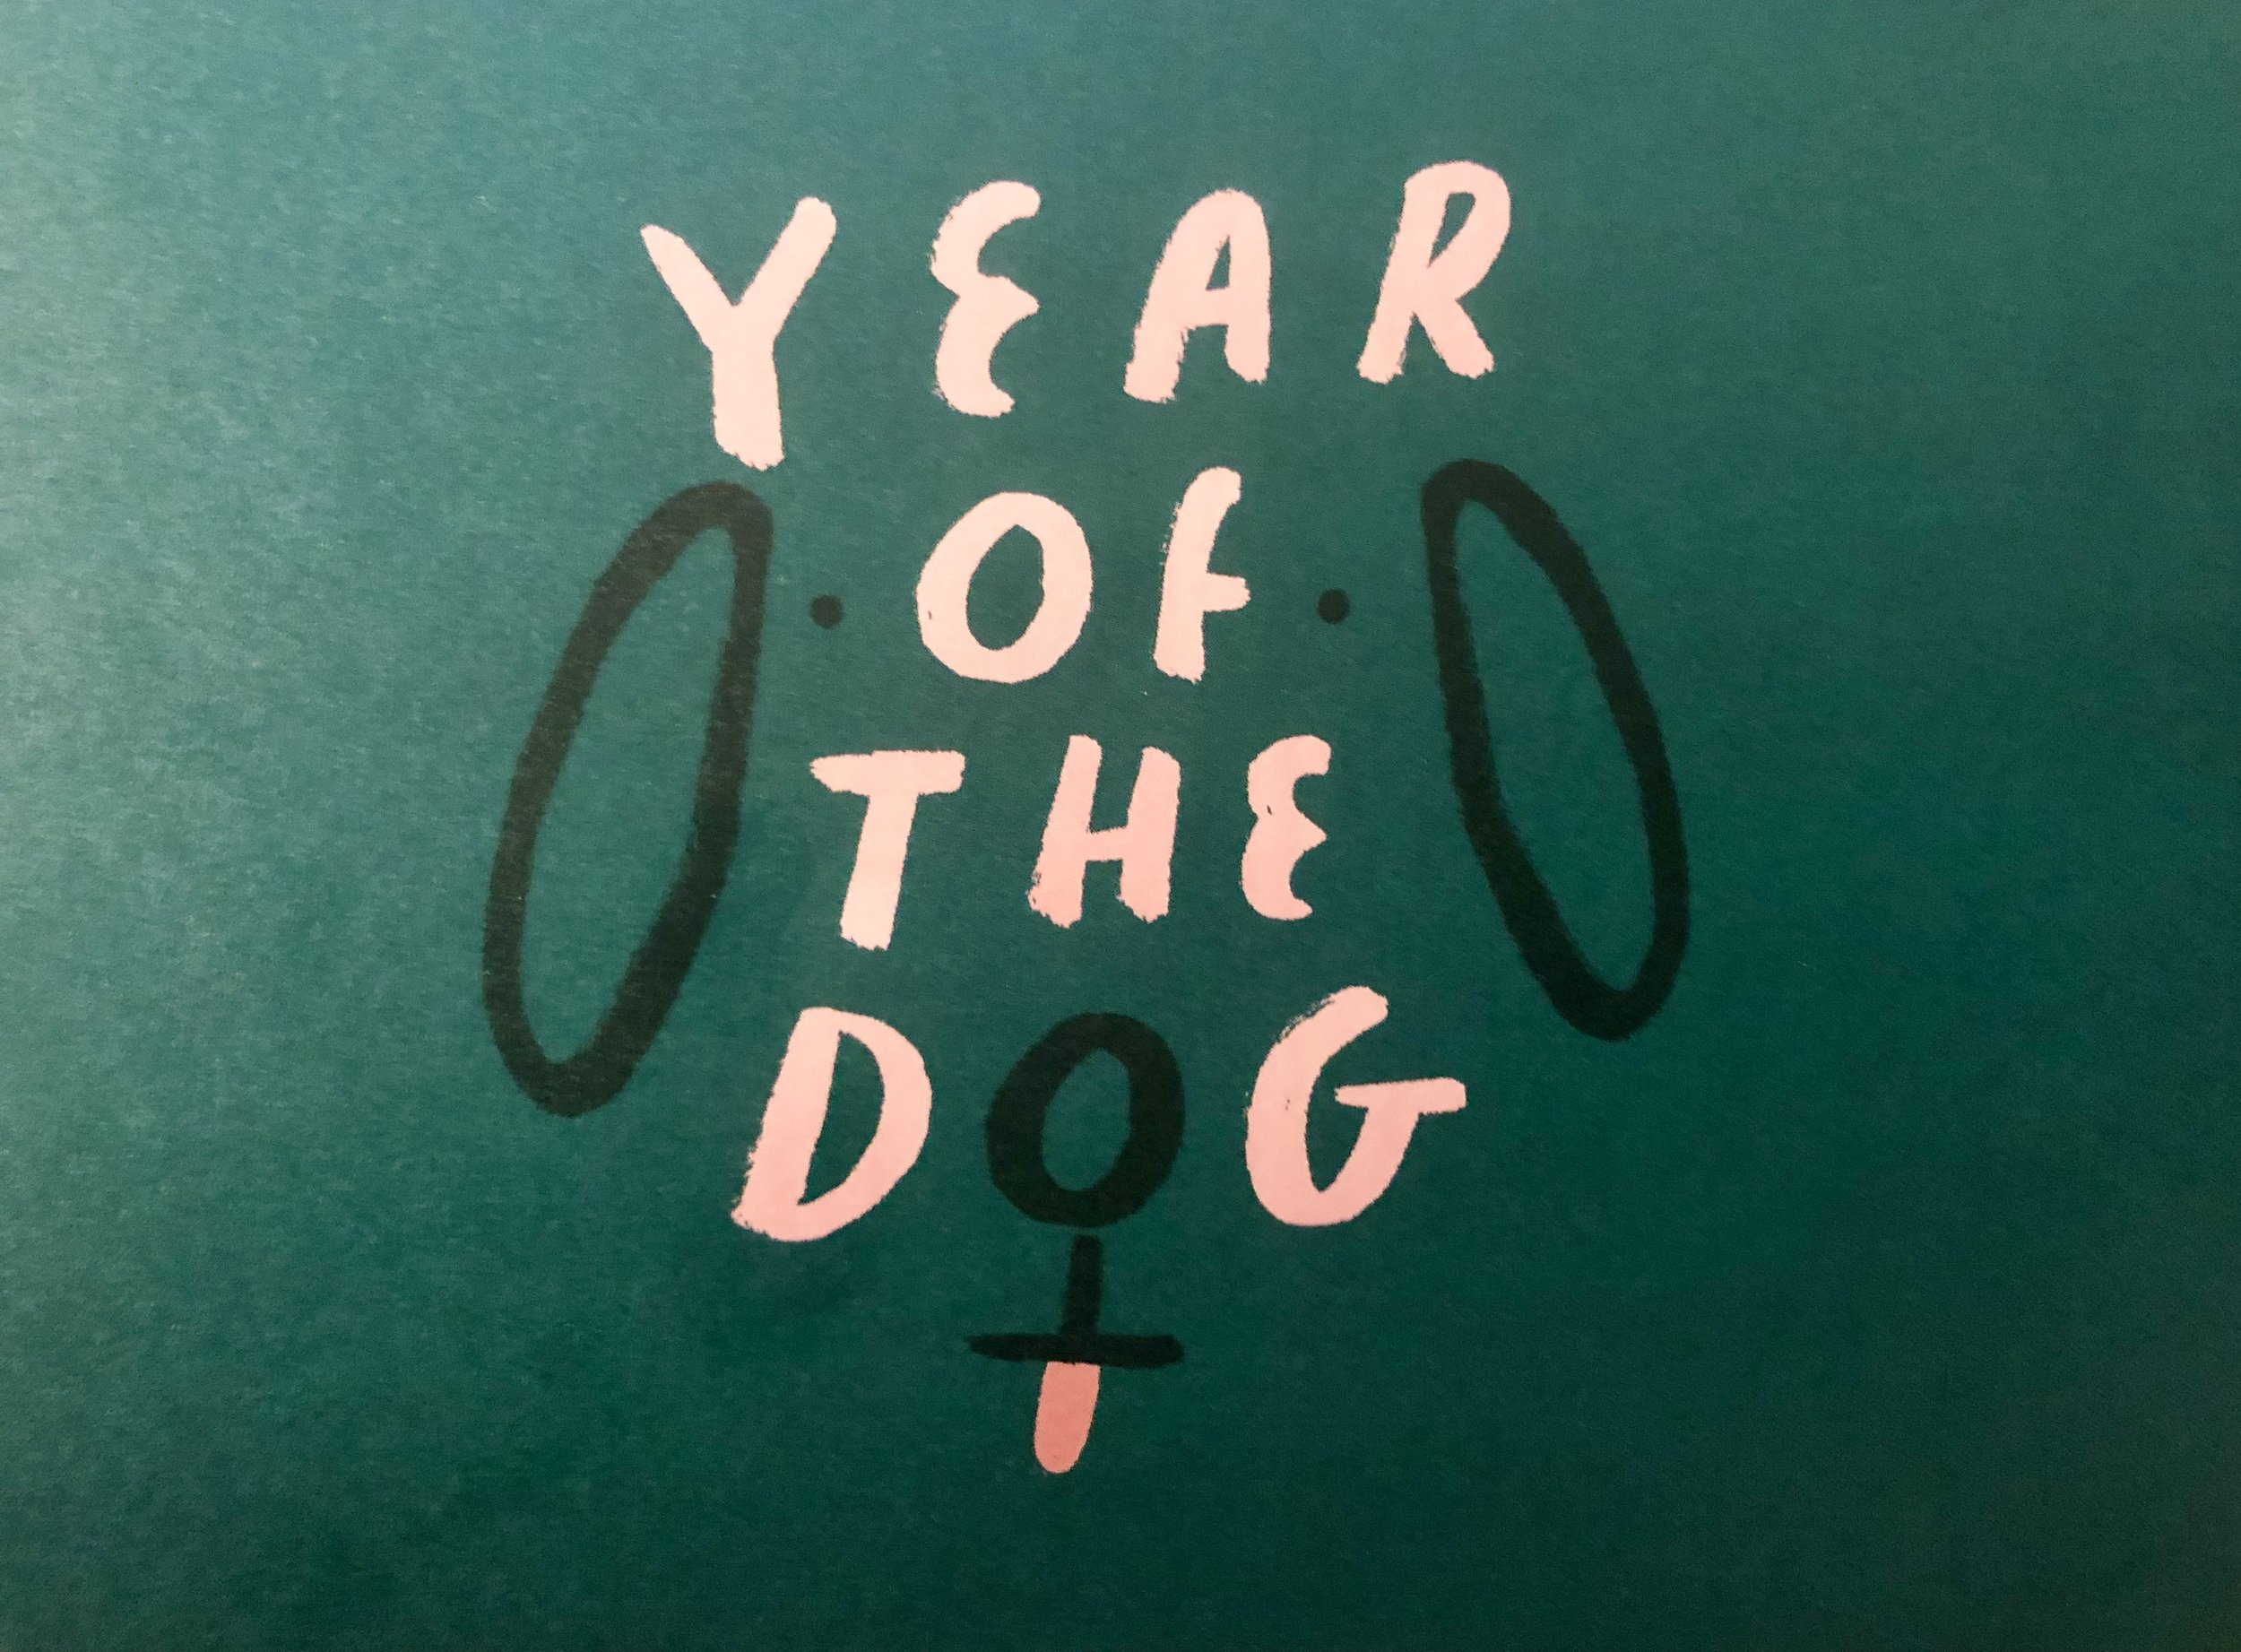 Year of the Dog Exhibition